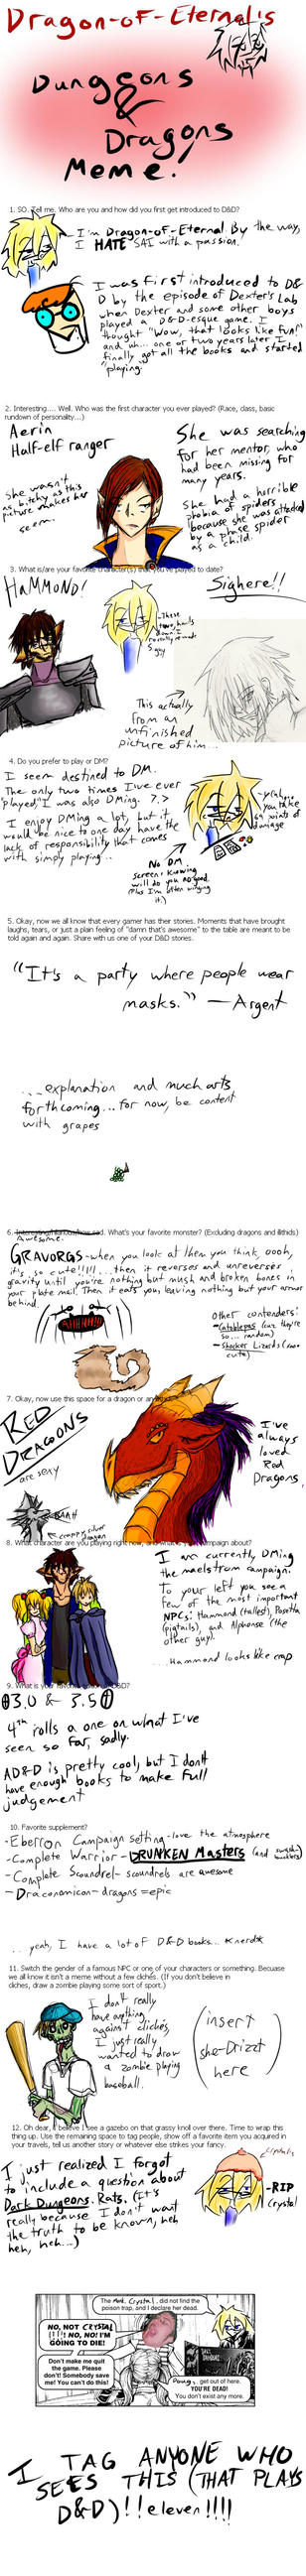 DandD Meme FINALLY FILLED OUT by Dragon-Of-Eternal